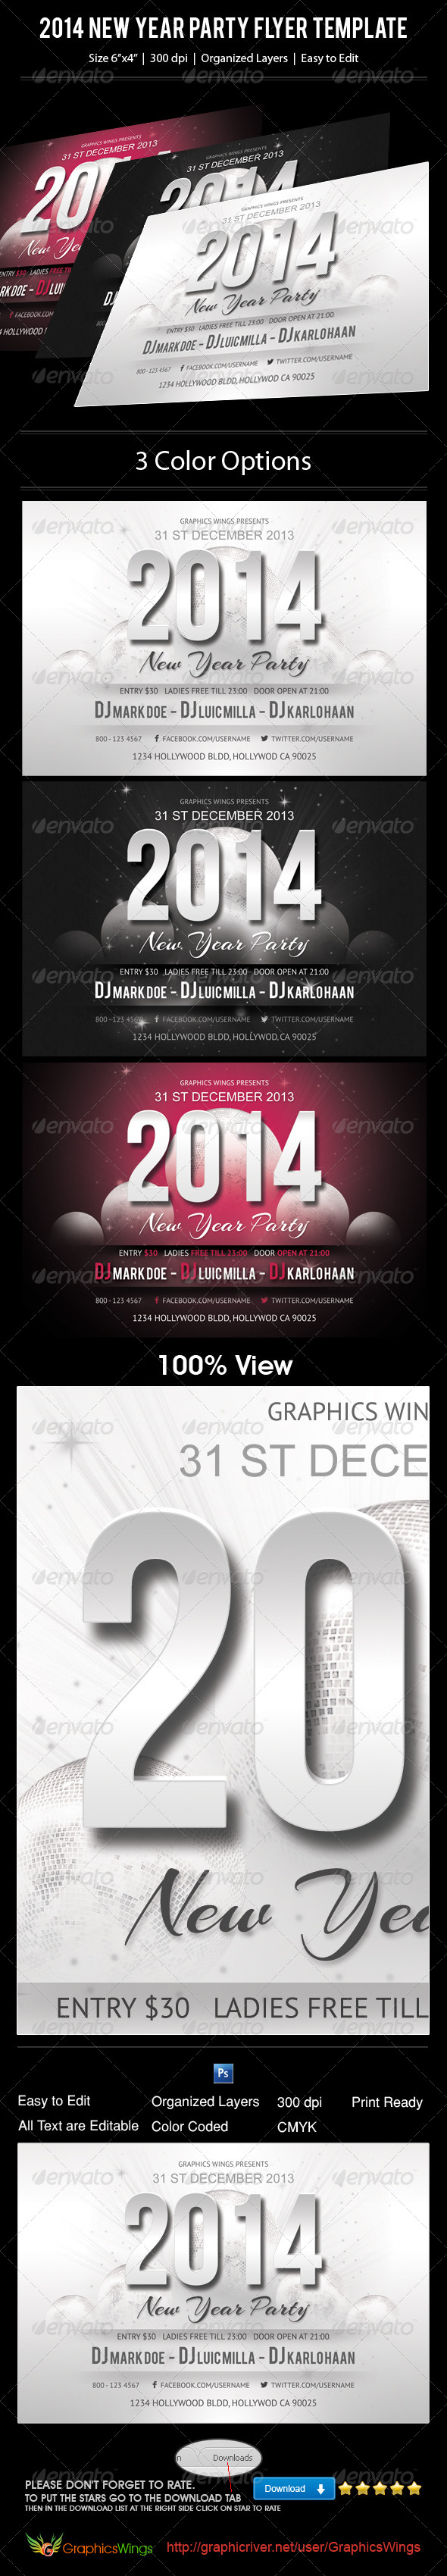 2014 New Year Party Flyer Template - Events Flyers